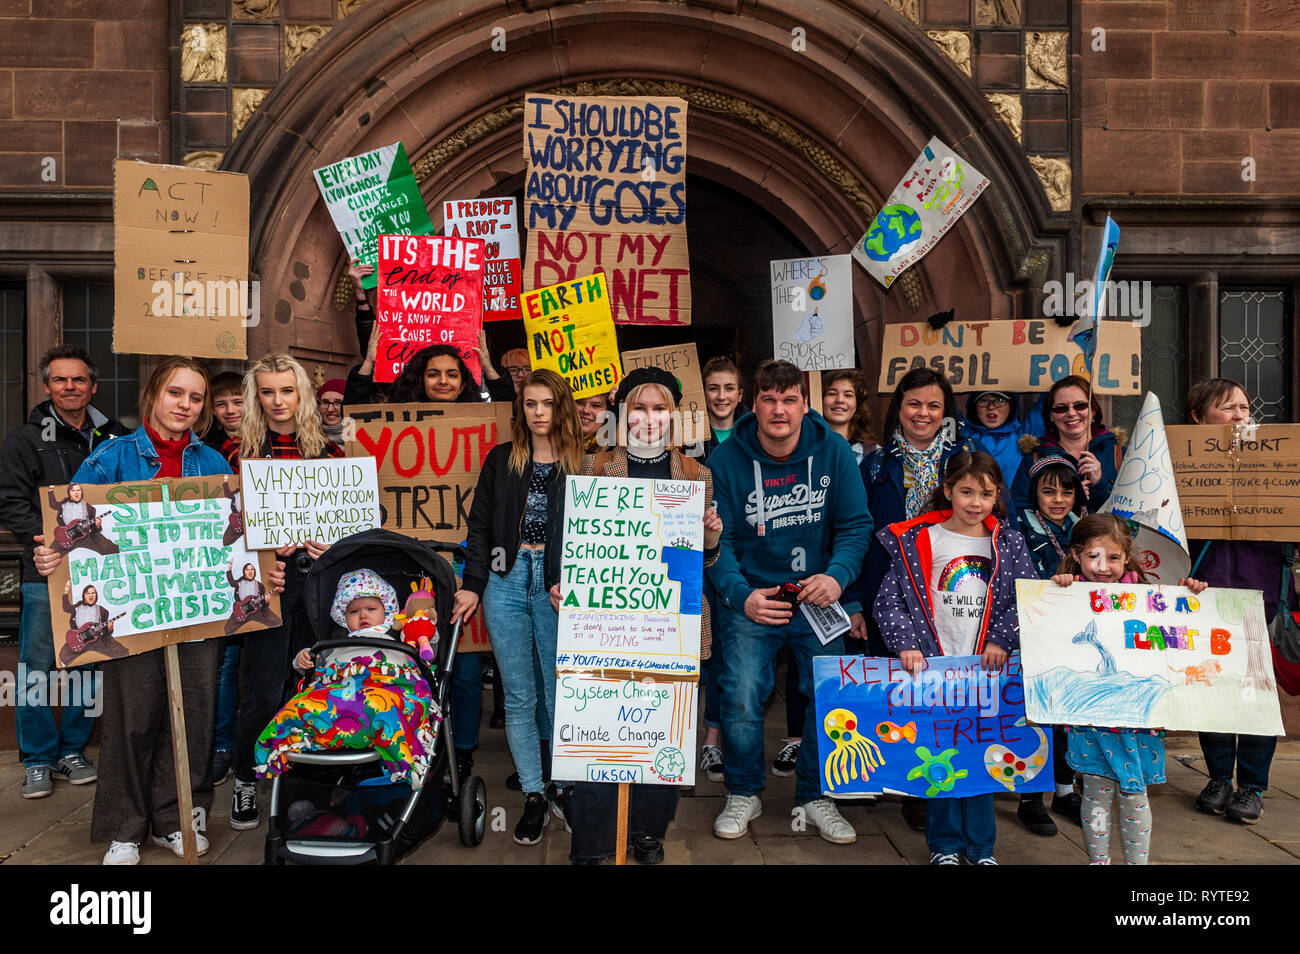 coventry-west-midlands-uk-15th-march-2019-a-large-crowd-of-protesters-gathered-outside-coventry-council-house-this-morning-with-banners-and-placards-in-the-latest-climate-change-protest-young-people-have-taken-to-the-streets-of-the-uk-in-a-global-protest-to-try-and-bring-about-climate-change-credit-andy-gibsonalamy-live-news-RYTE92.jpg